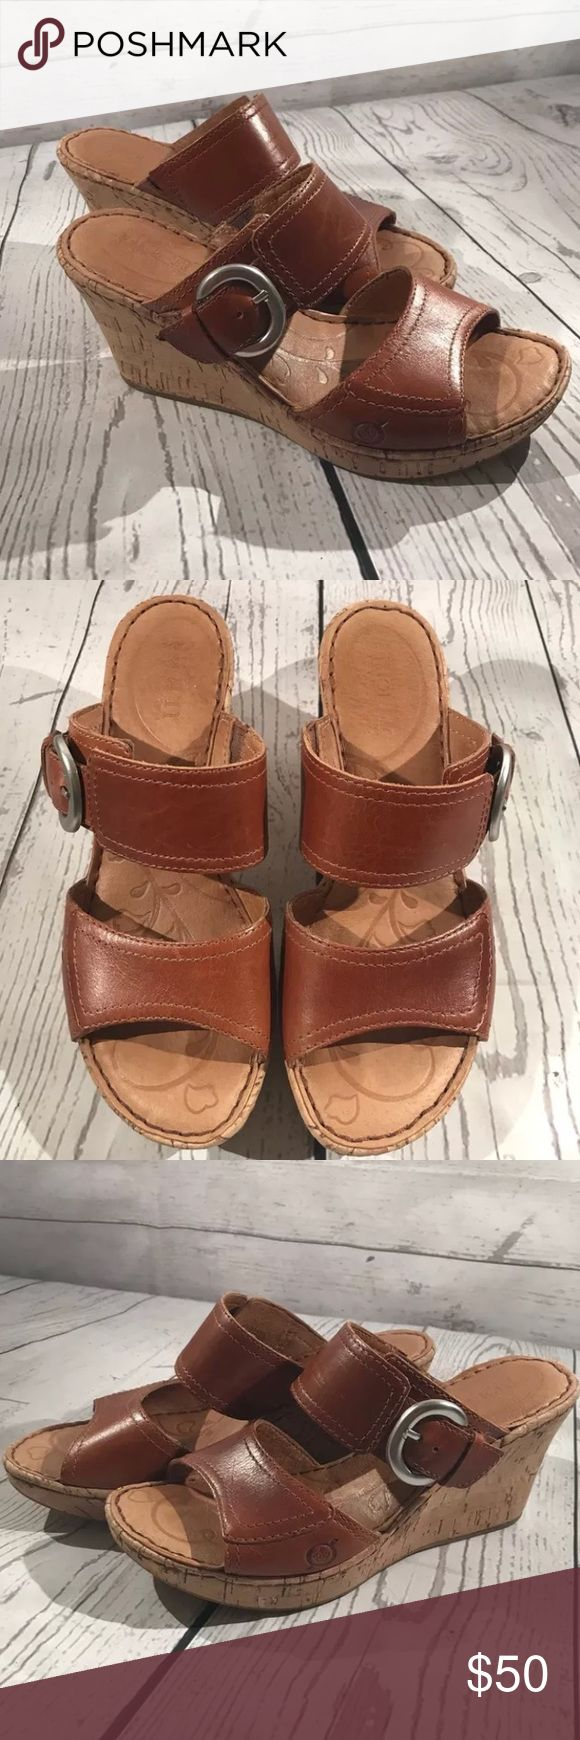 Born Light Brown Leather Wedge sandals Born Light Brown Leather Wedge sandals Women's size 6  In great Condition Born Shoes Wedges